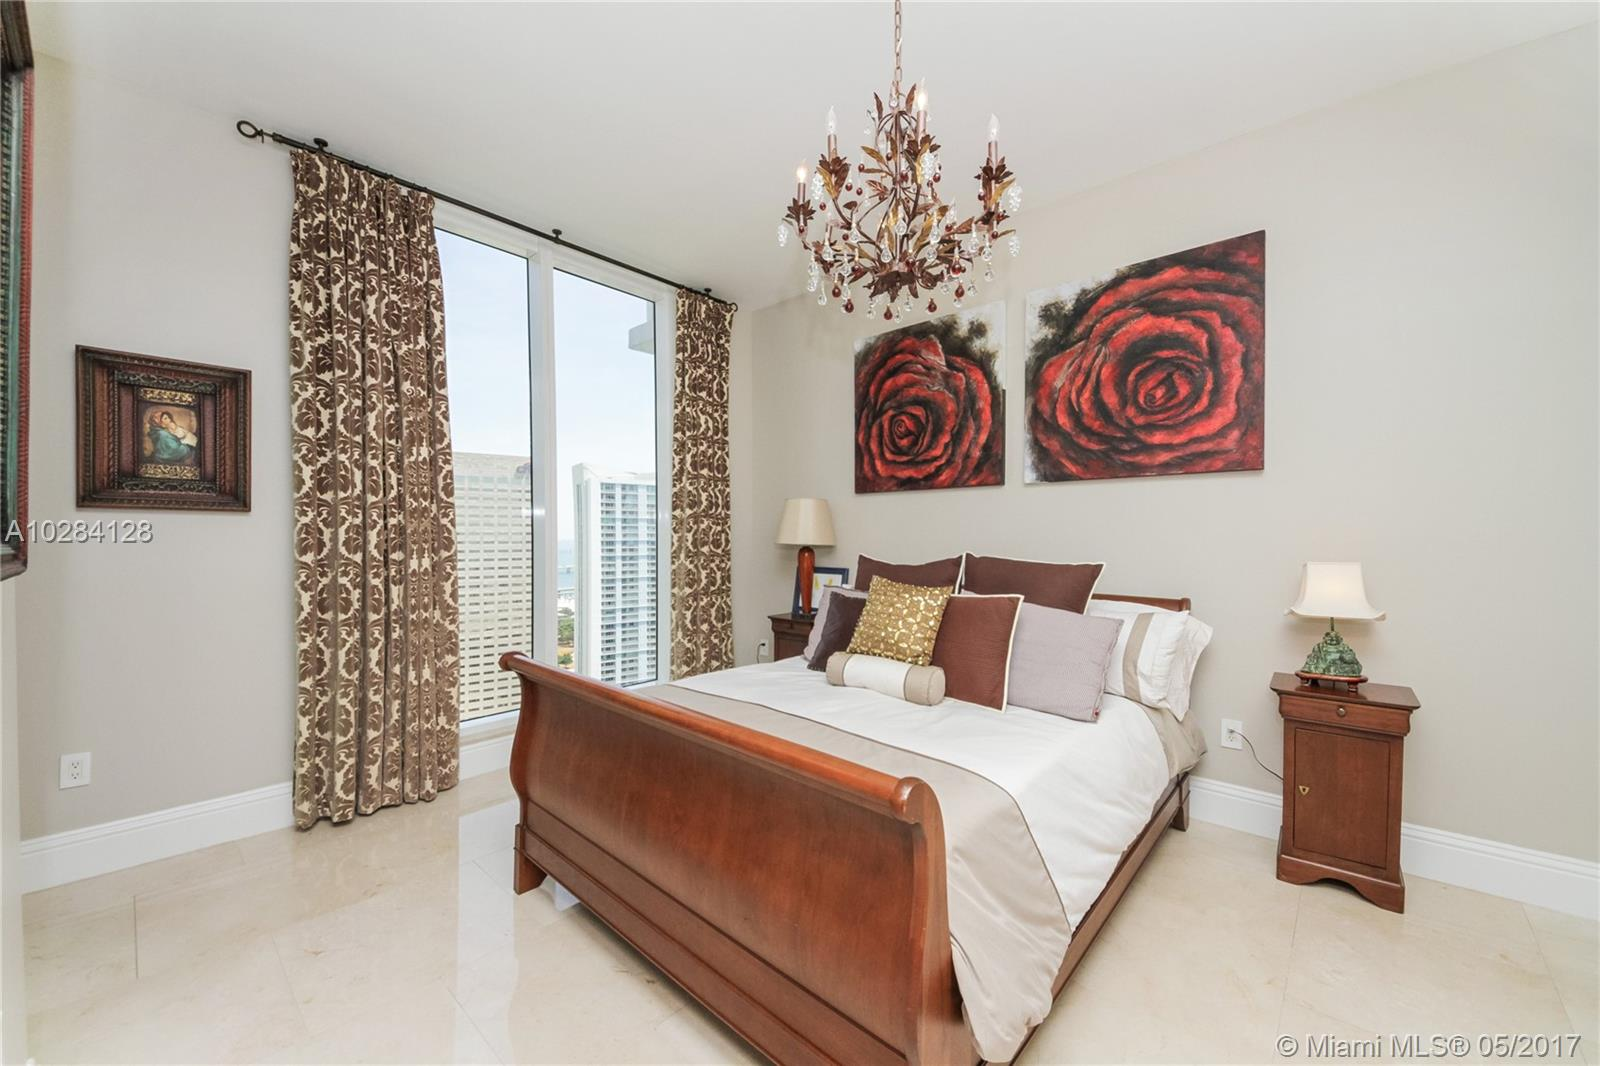 901 Brickell key blvd-PH3705 miami--fl-33131-a10284128-Pic22